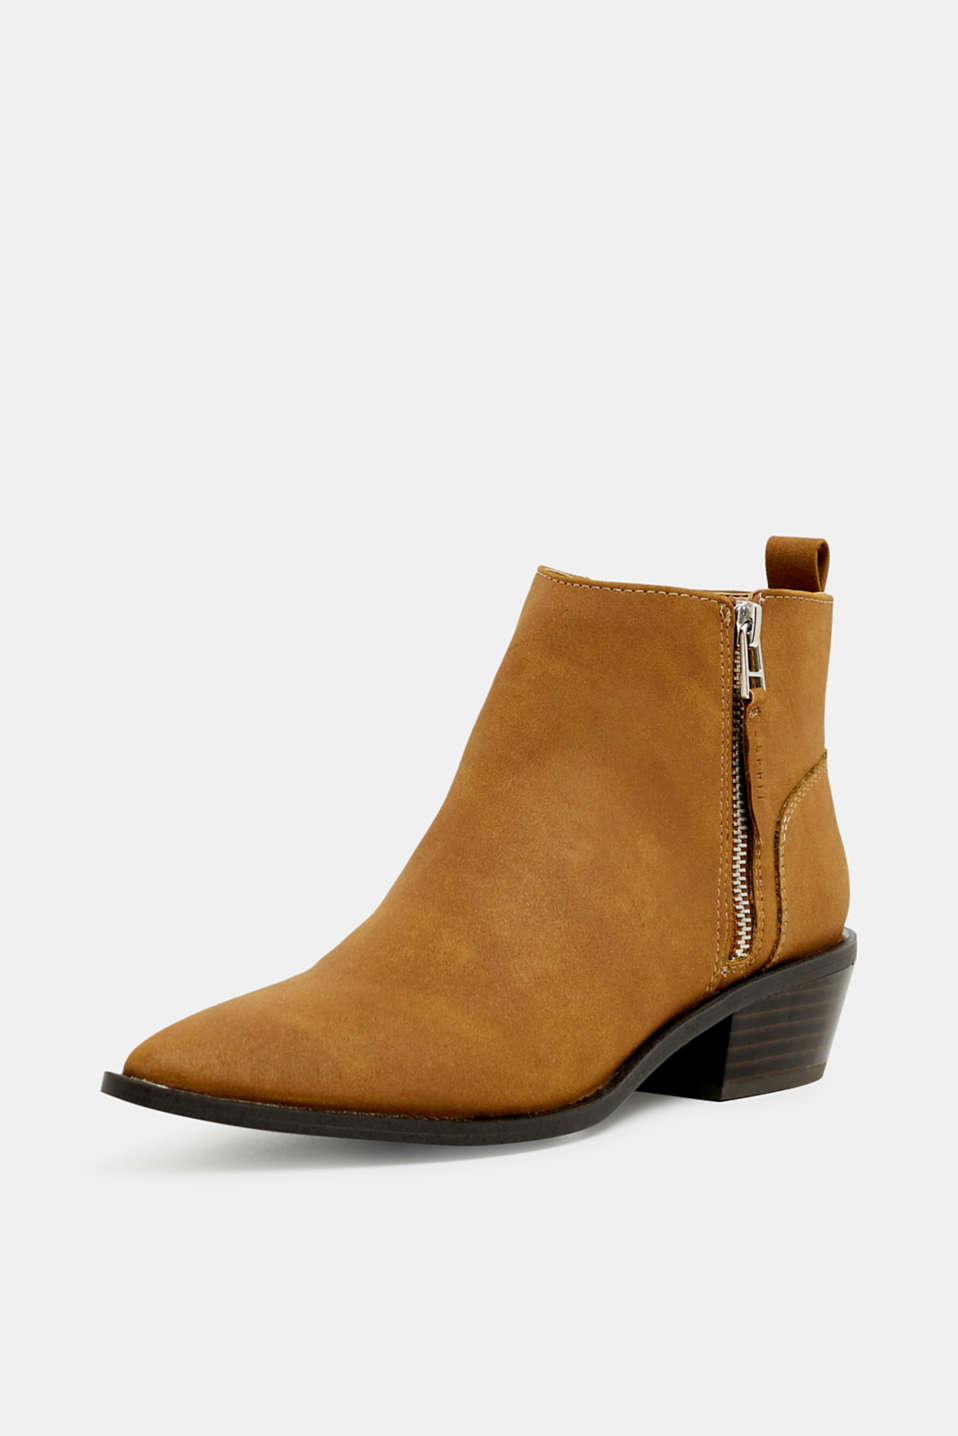 Faux nubuck leather ankle boots, TOFFEE, detail image number 2